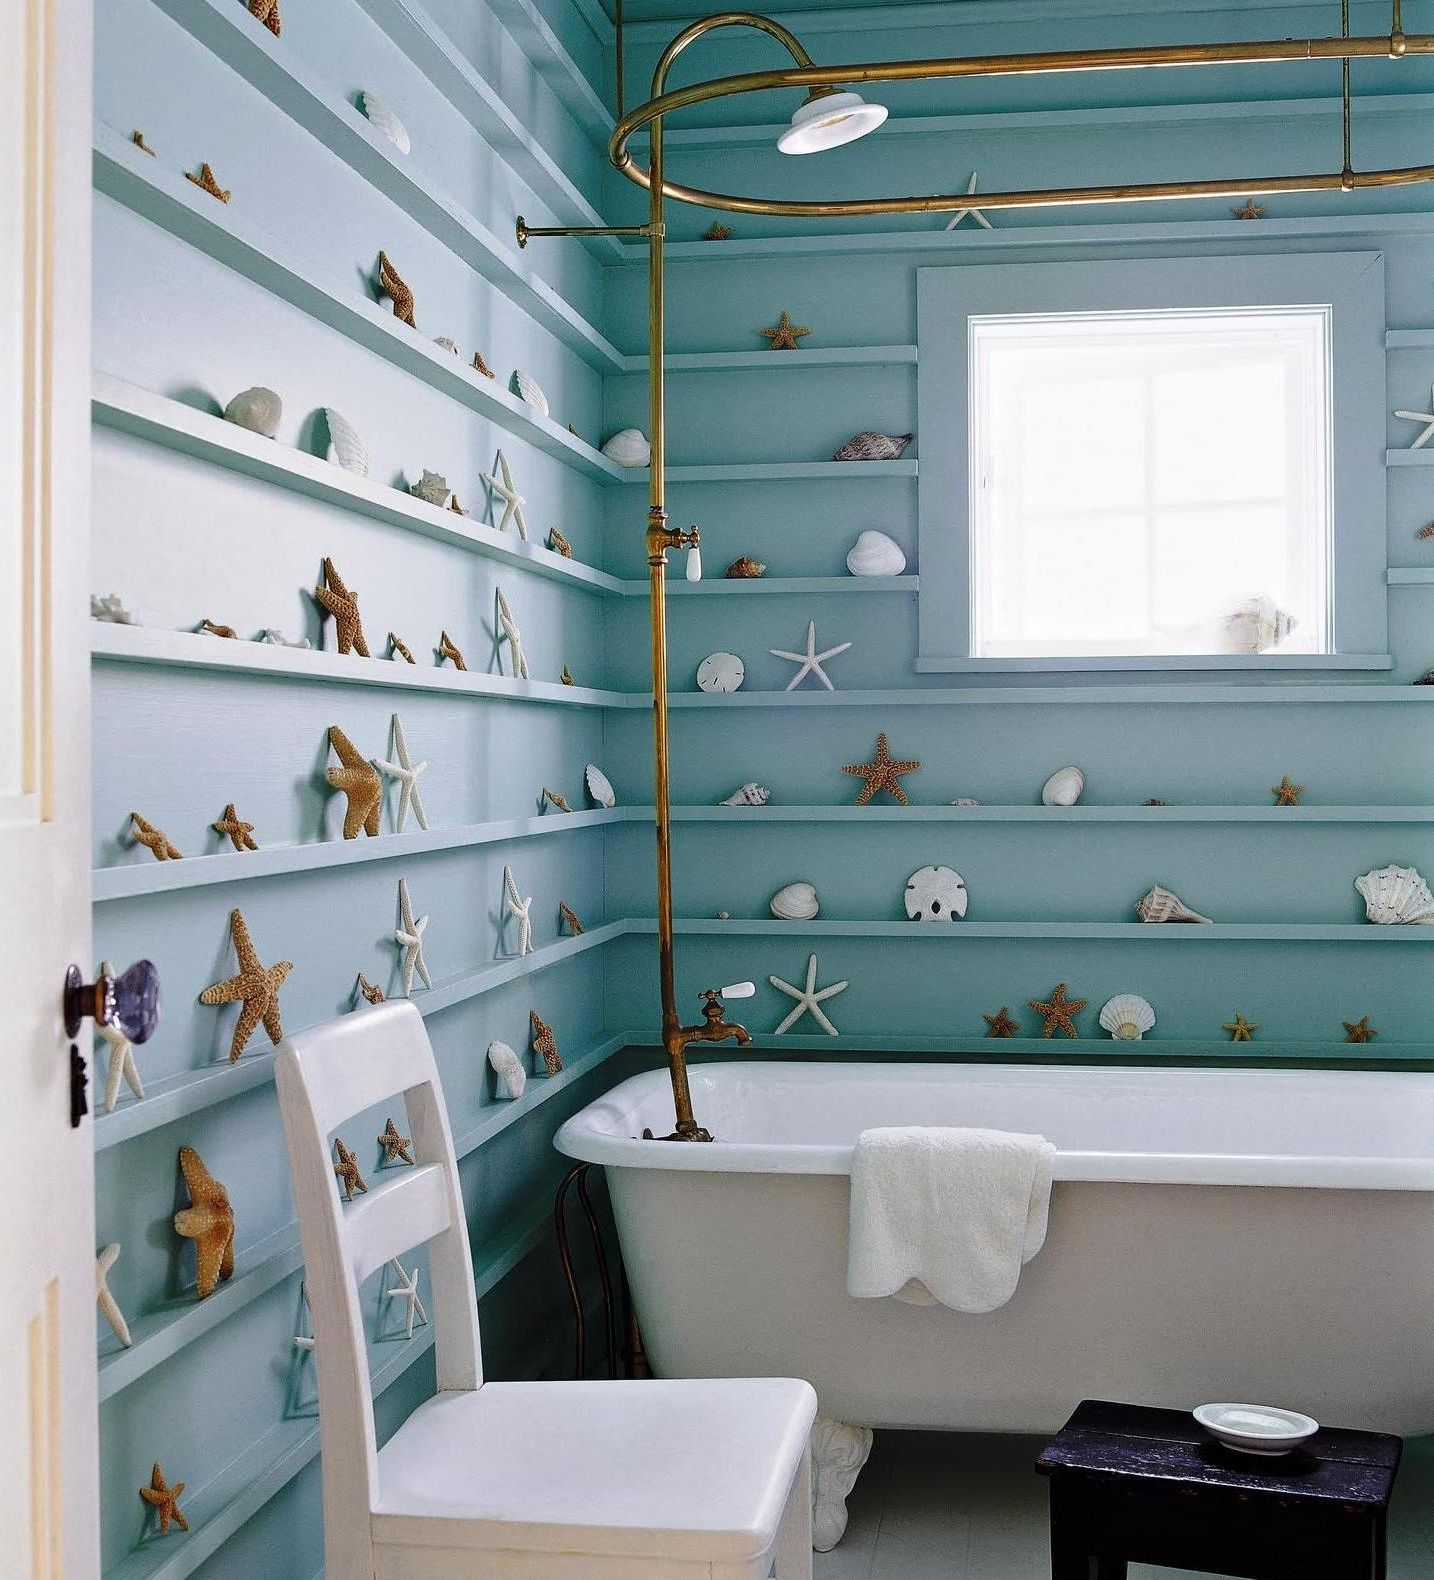 Bathroom Interior Beach Theme Bathroom Design With Coral And Shell Decors Interior Magazine